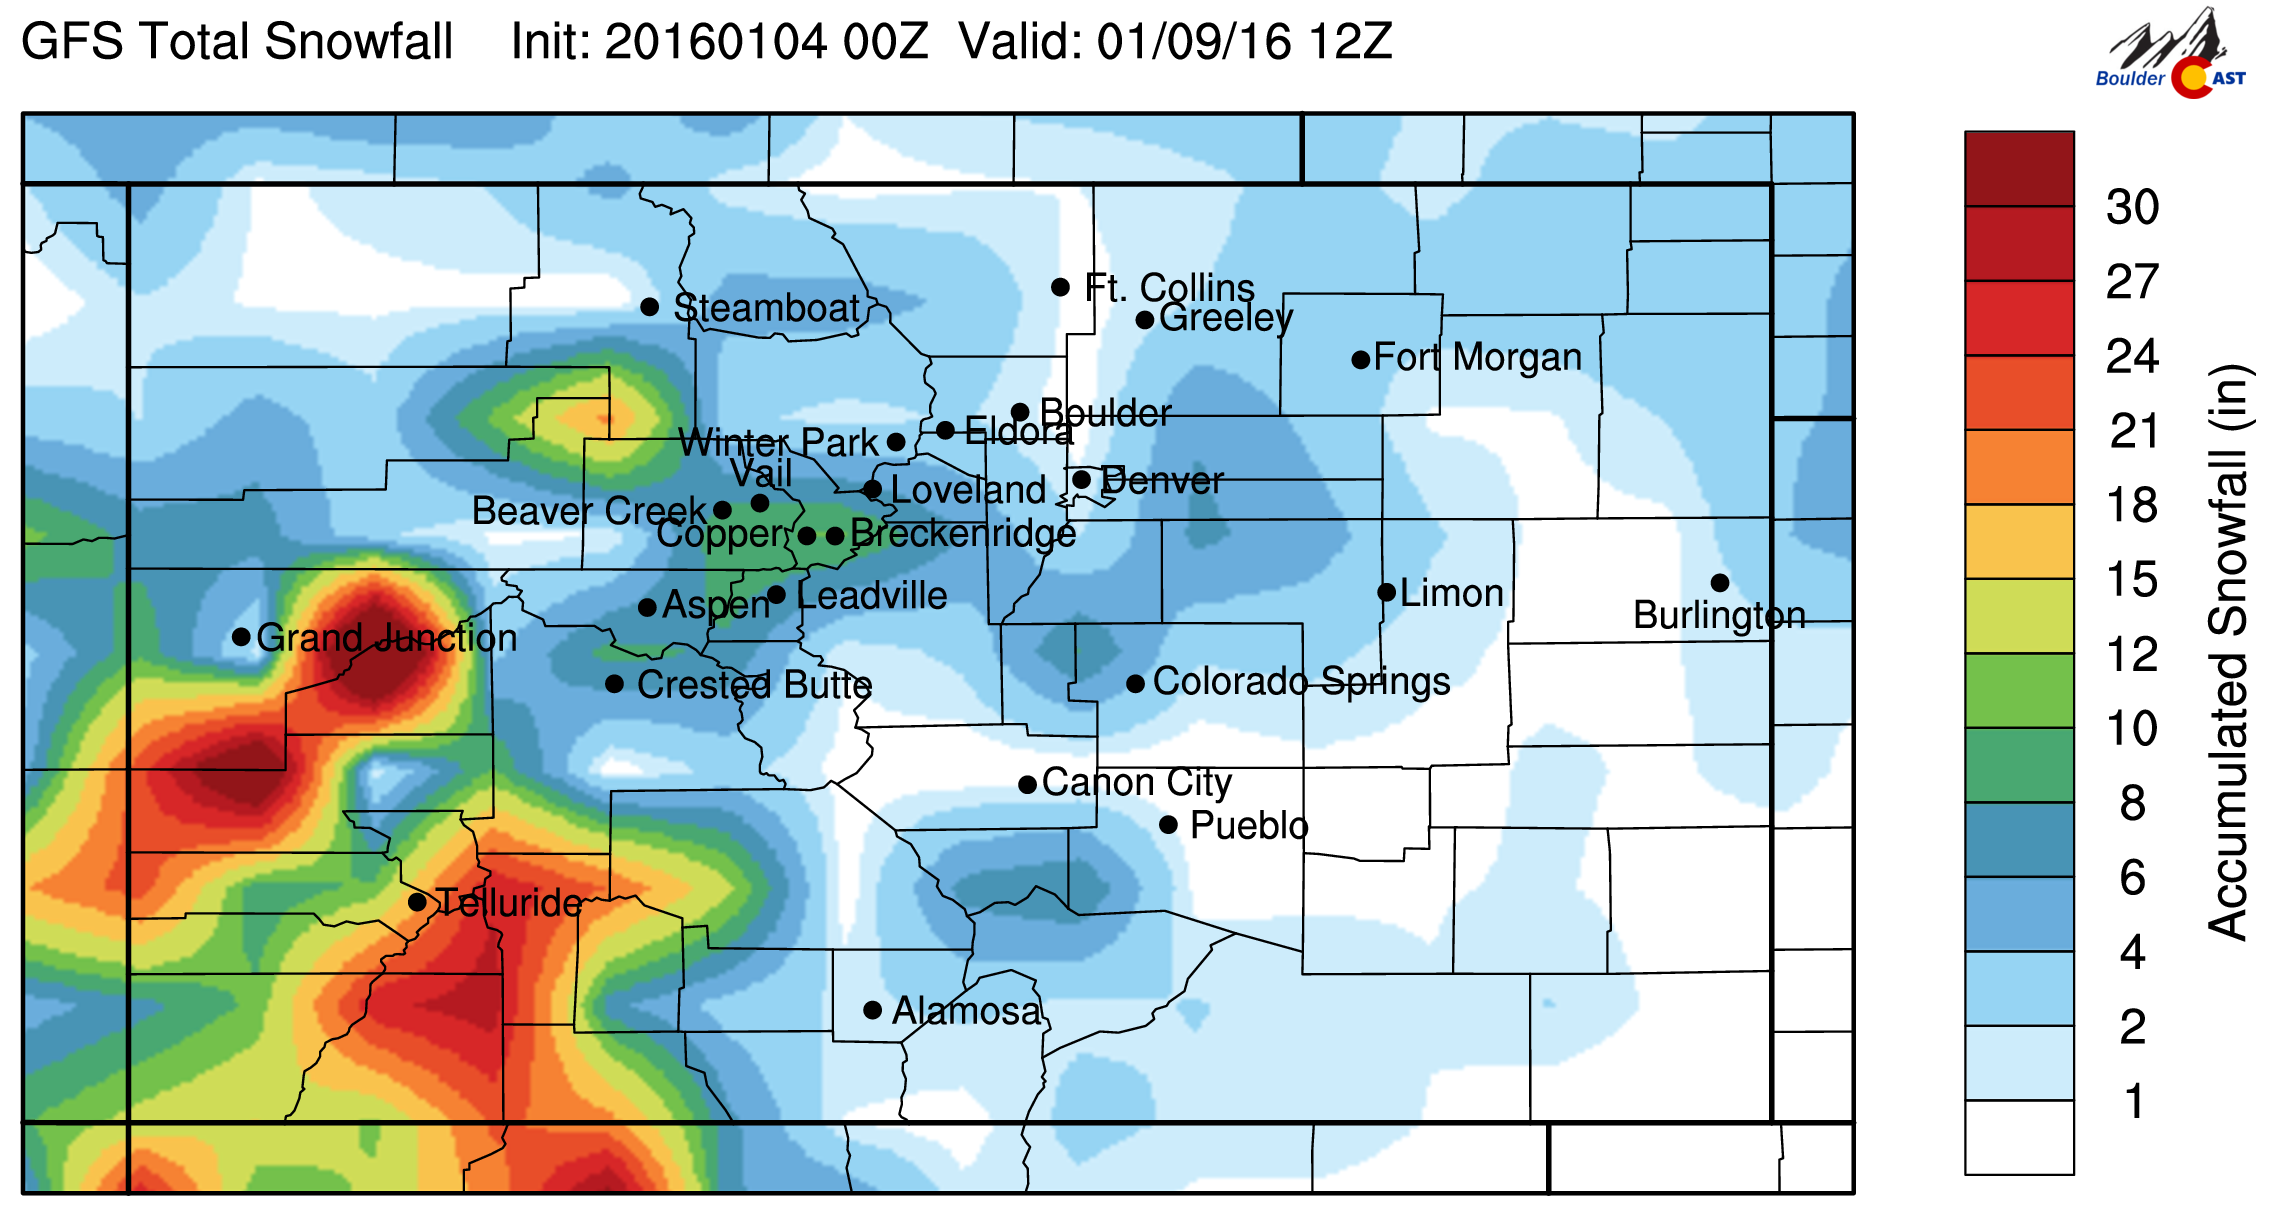 GFS total snowfall forecast through Saturday morning. If anything, it indicates at least the potential for some of the Front Range to pick up some light snow Thursday into Friday.